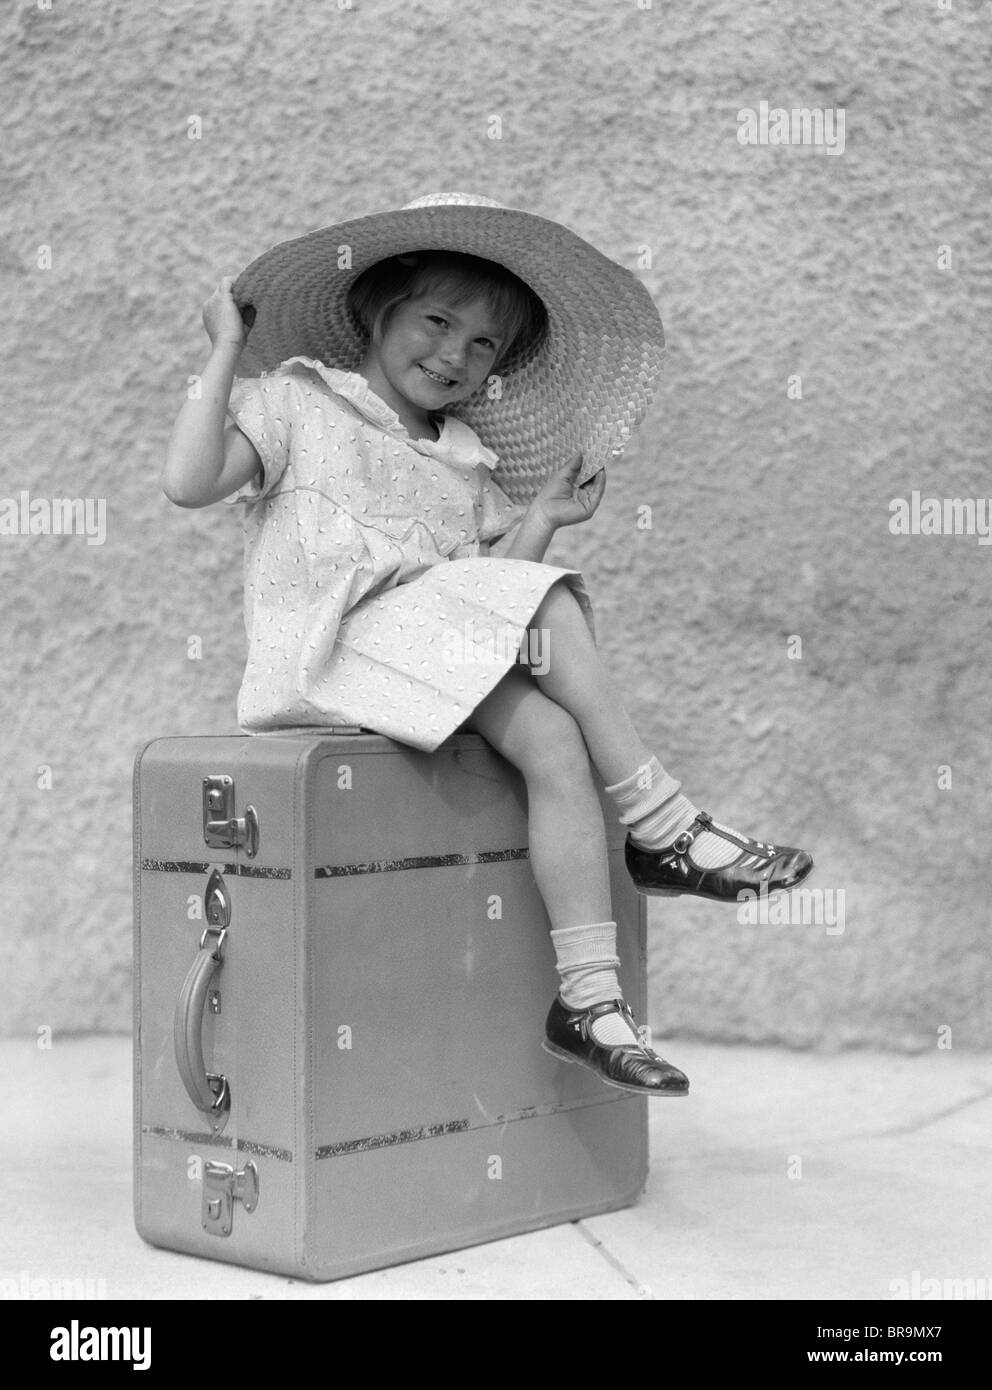 1930 PORTRAIT SMILING LITTLE GIRL SITTING ON SUITCASE PORT grand chapeau de paille Photo Stock